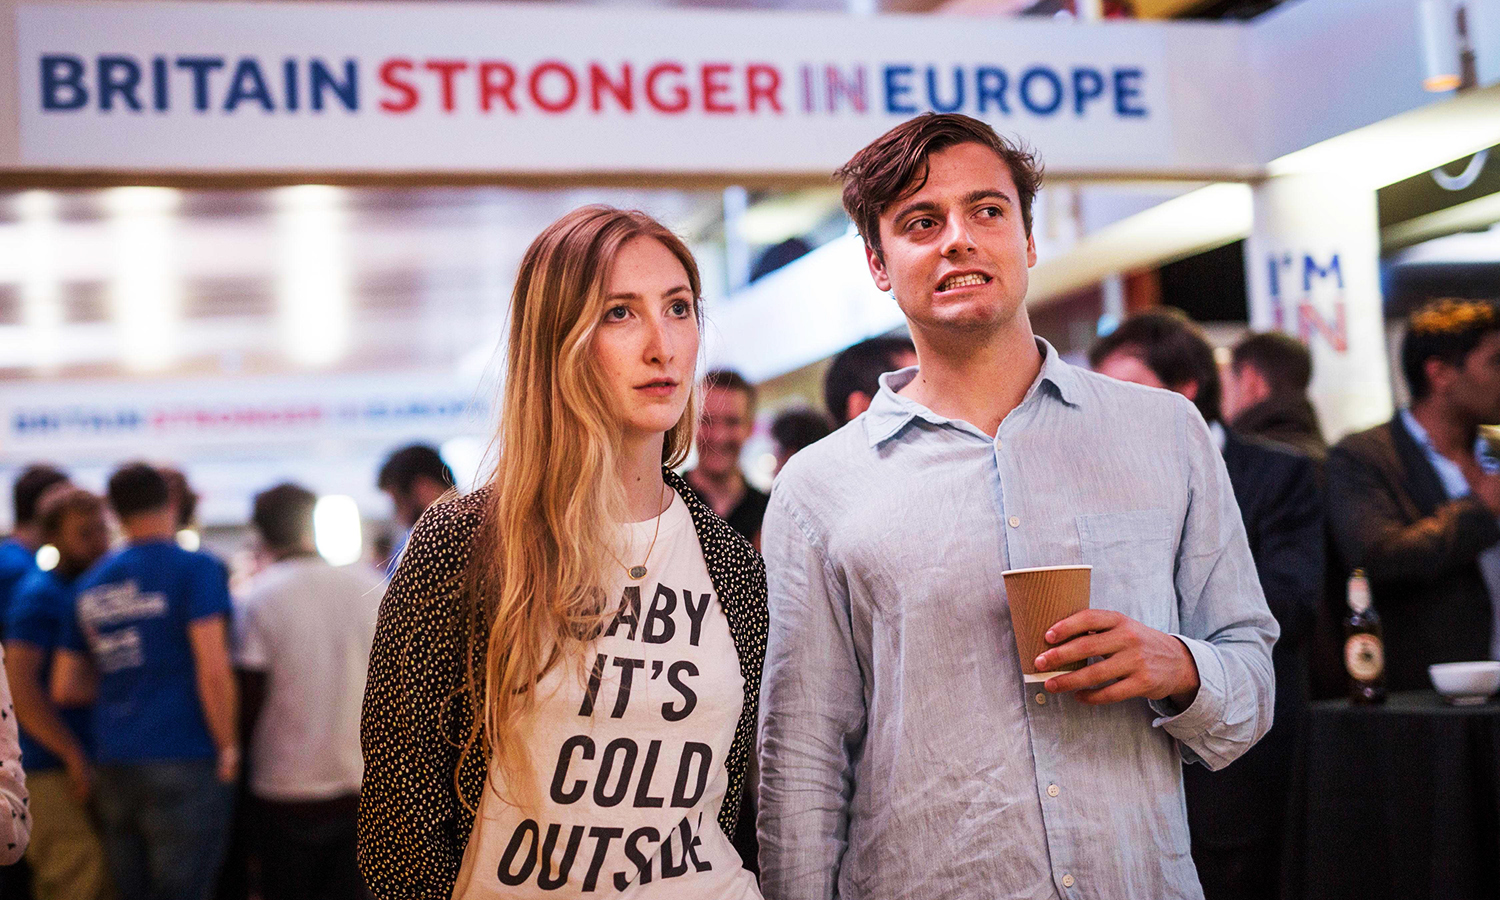 Supporters of the 'Stronger In' Campaign react as results of the EU referendum are announced at a results party at the Royal Festival Hall in London early in the morning of June 24, 2016. Bookmakers dramatically reversed the odds on Britain leaving the European Union on Friday as early results from a historic referendum pointed to strong support for a Brexit. / AFP PHOTO / POOL / ROB STOTHARD